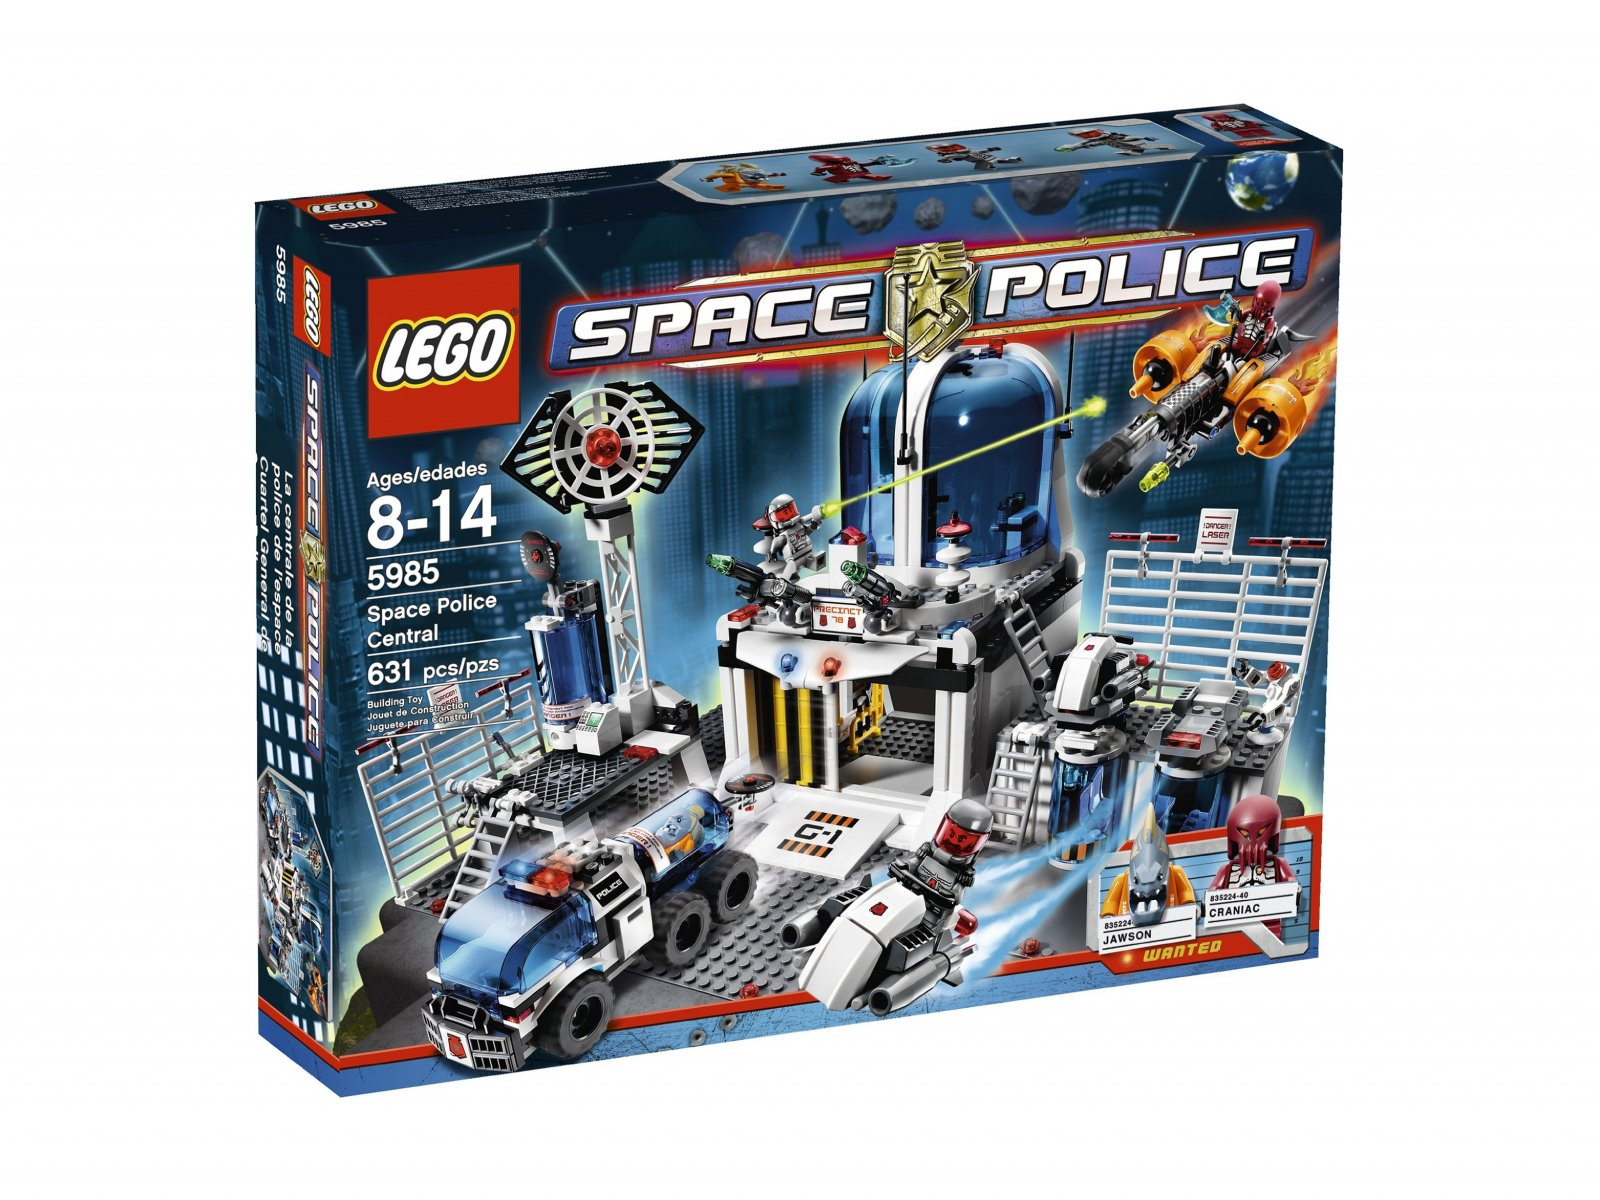 LEGO Space Police Space Police Central 5985